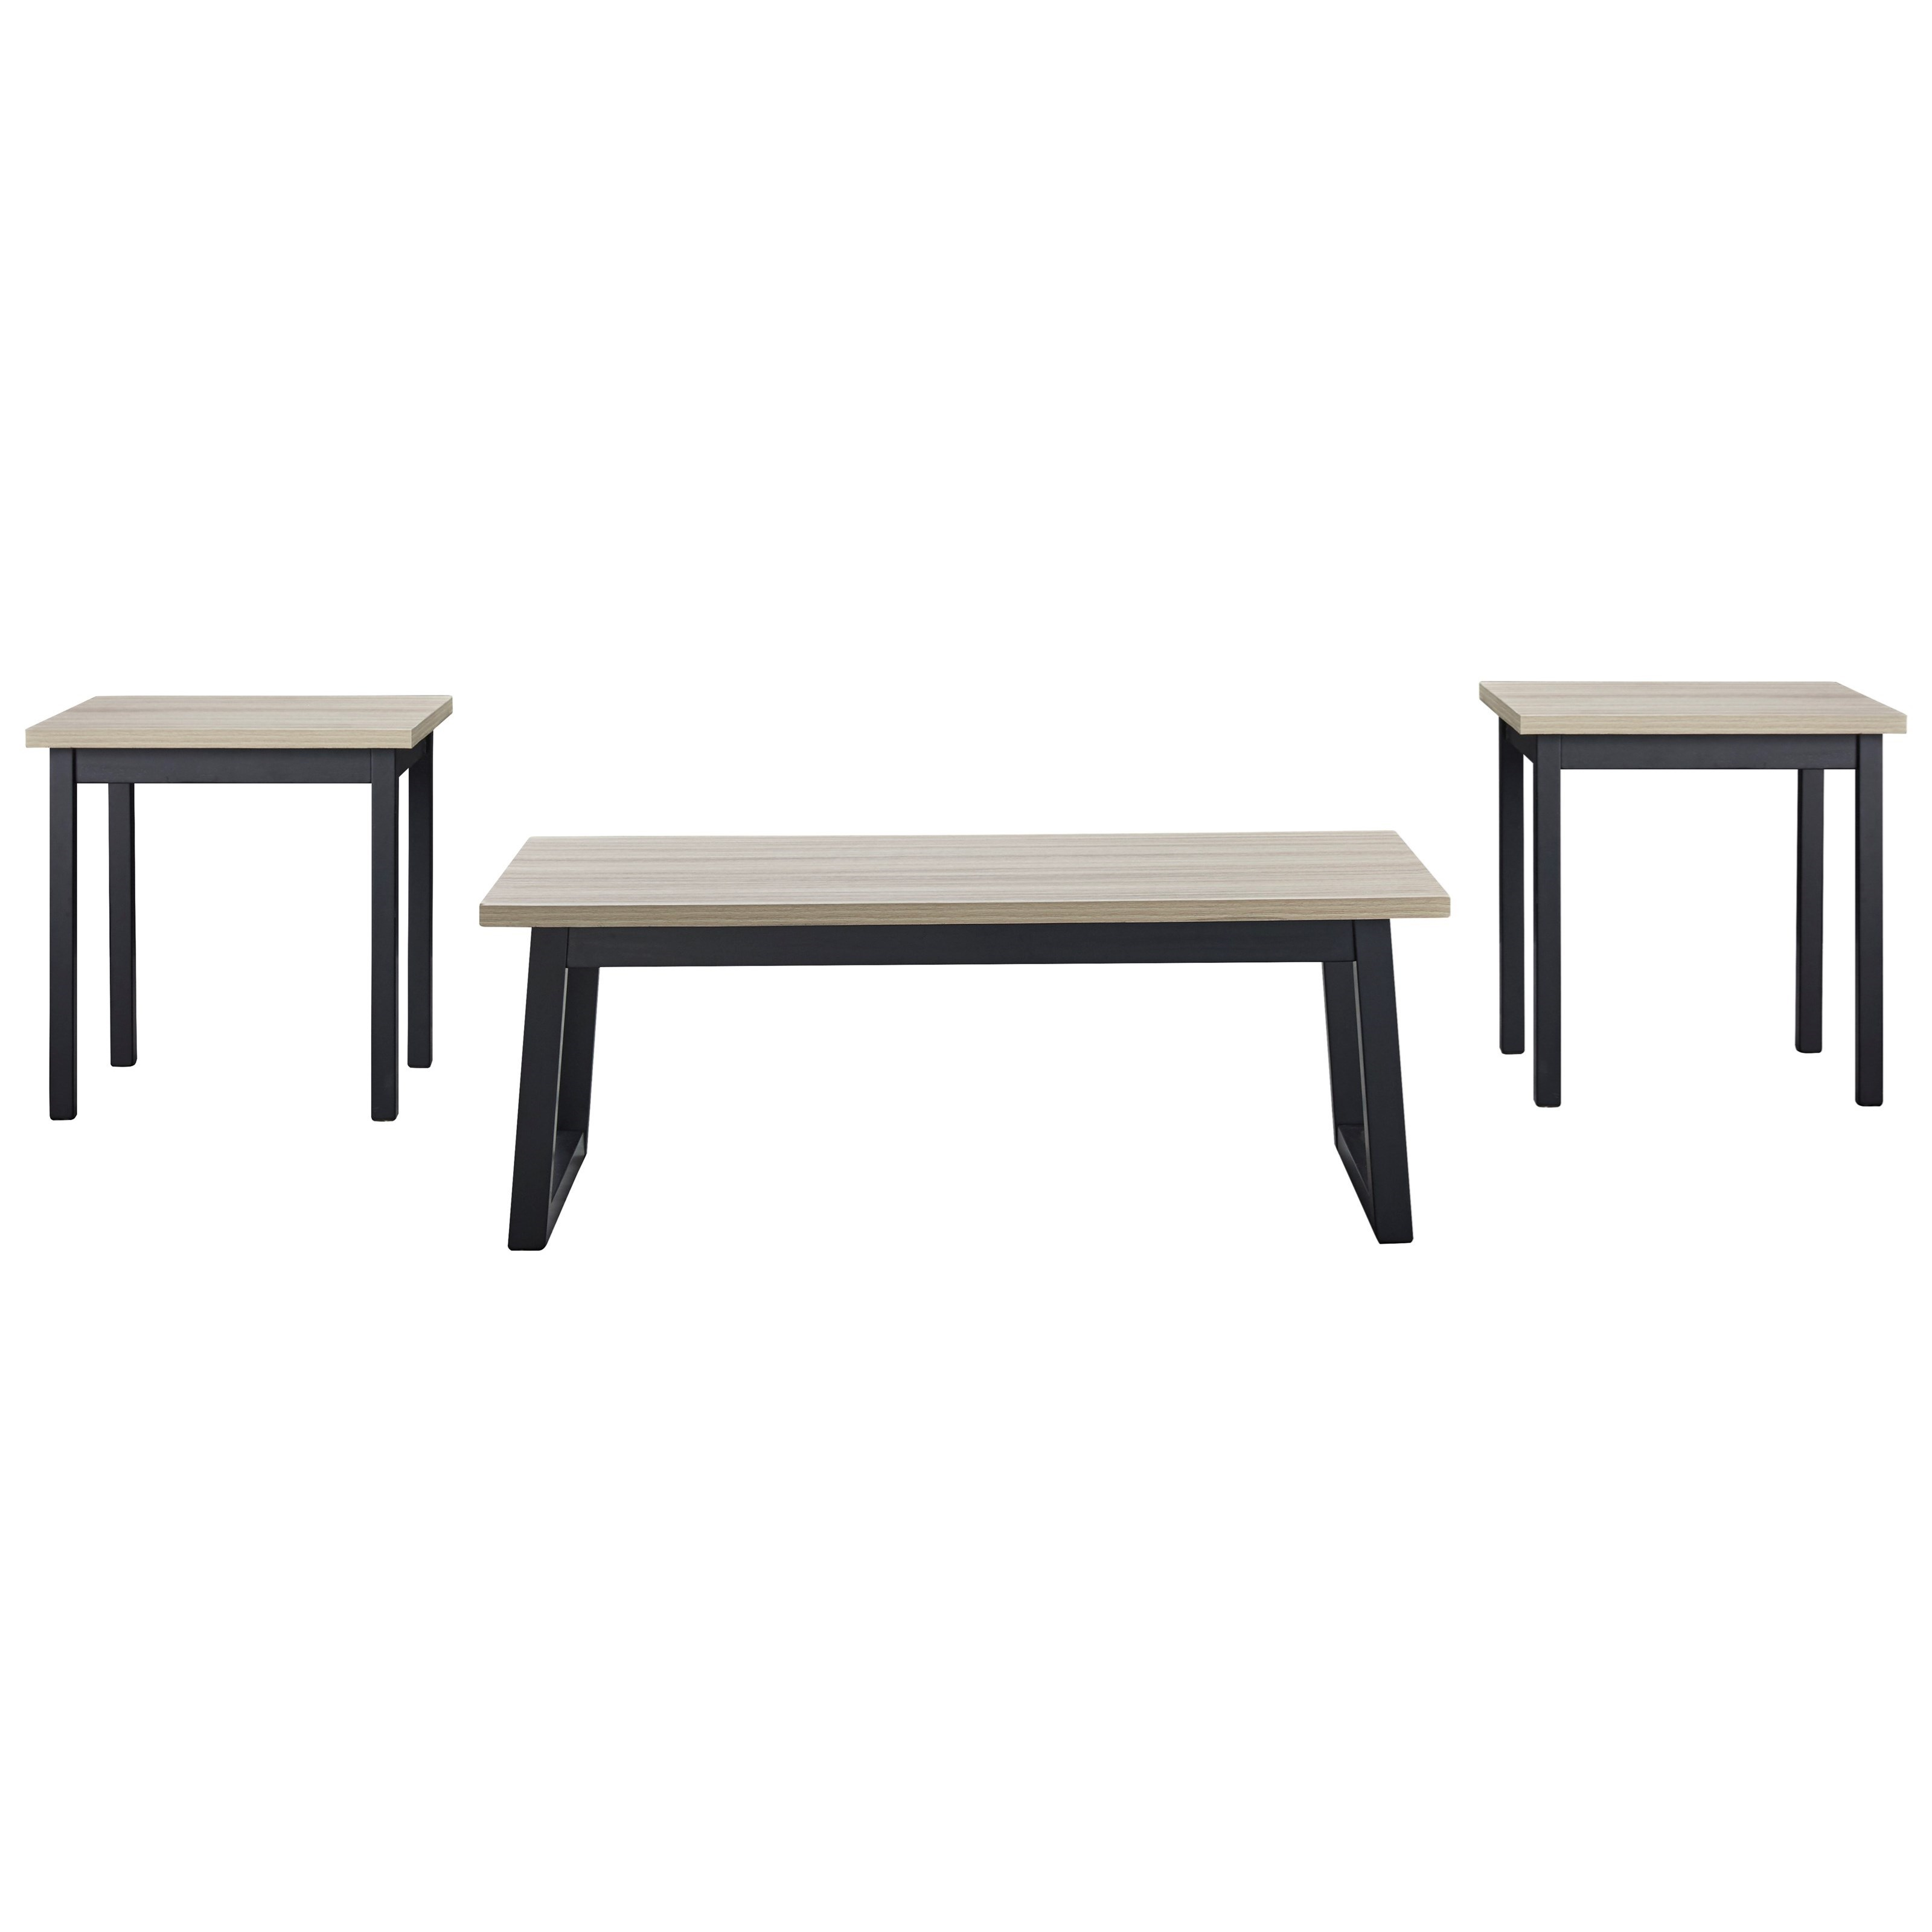 Waylowe Occasional Table Set by Signature Design by Ashley at Northeast Factory Direct